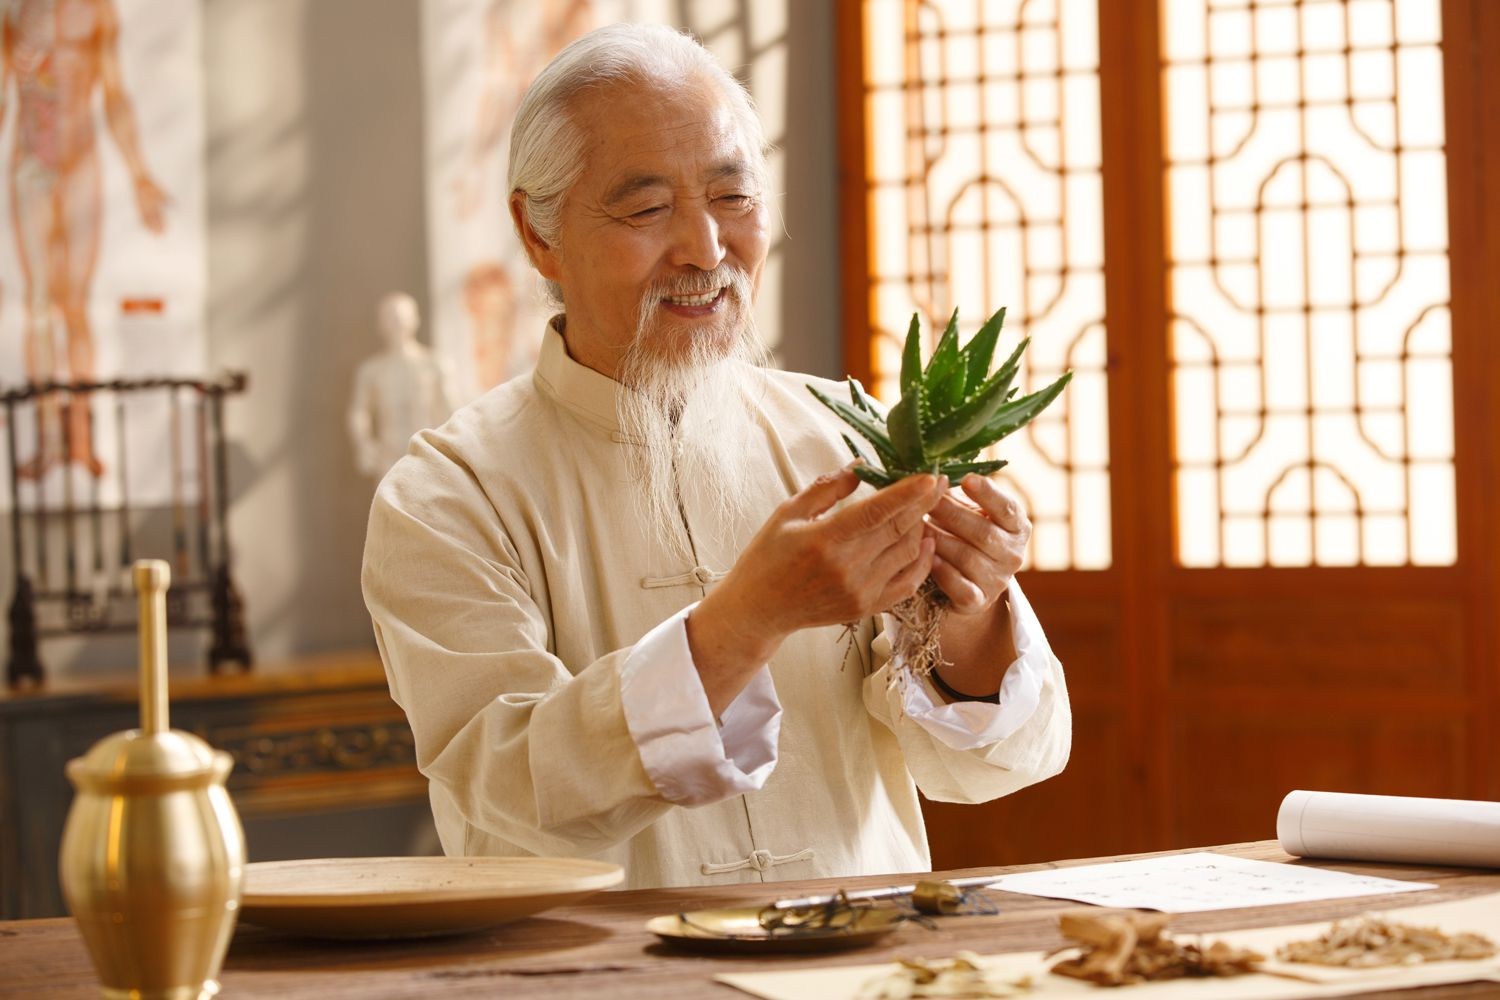 Difference Between a Naturopath and Naturopathic Doctor